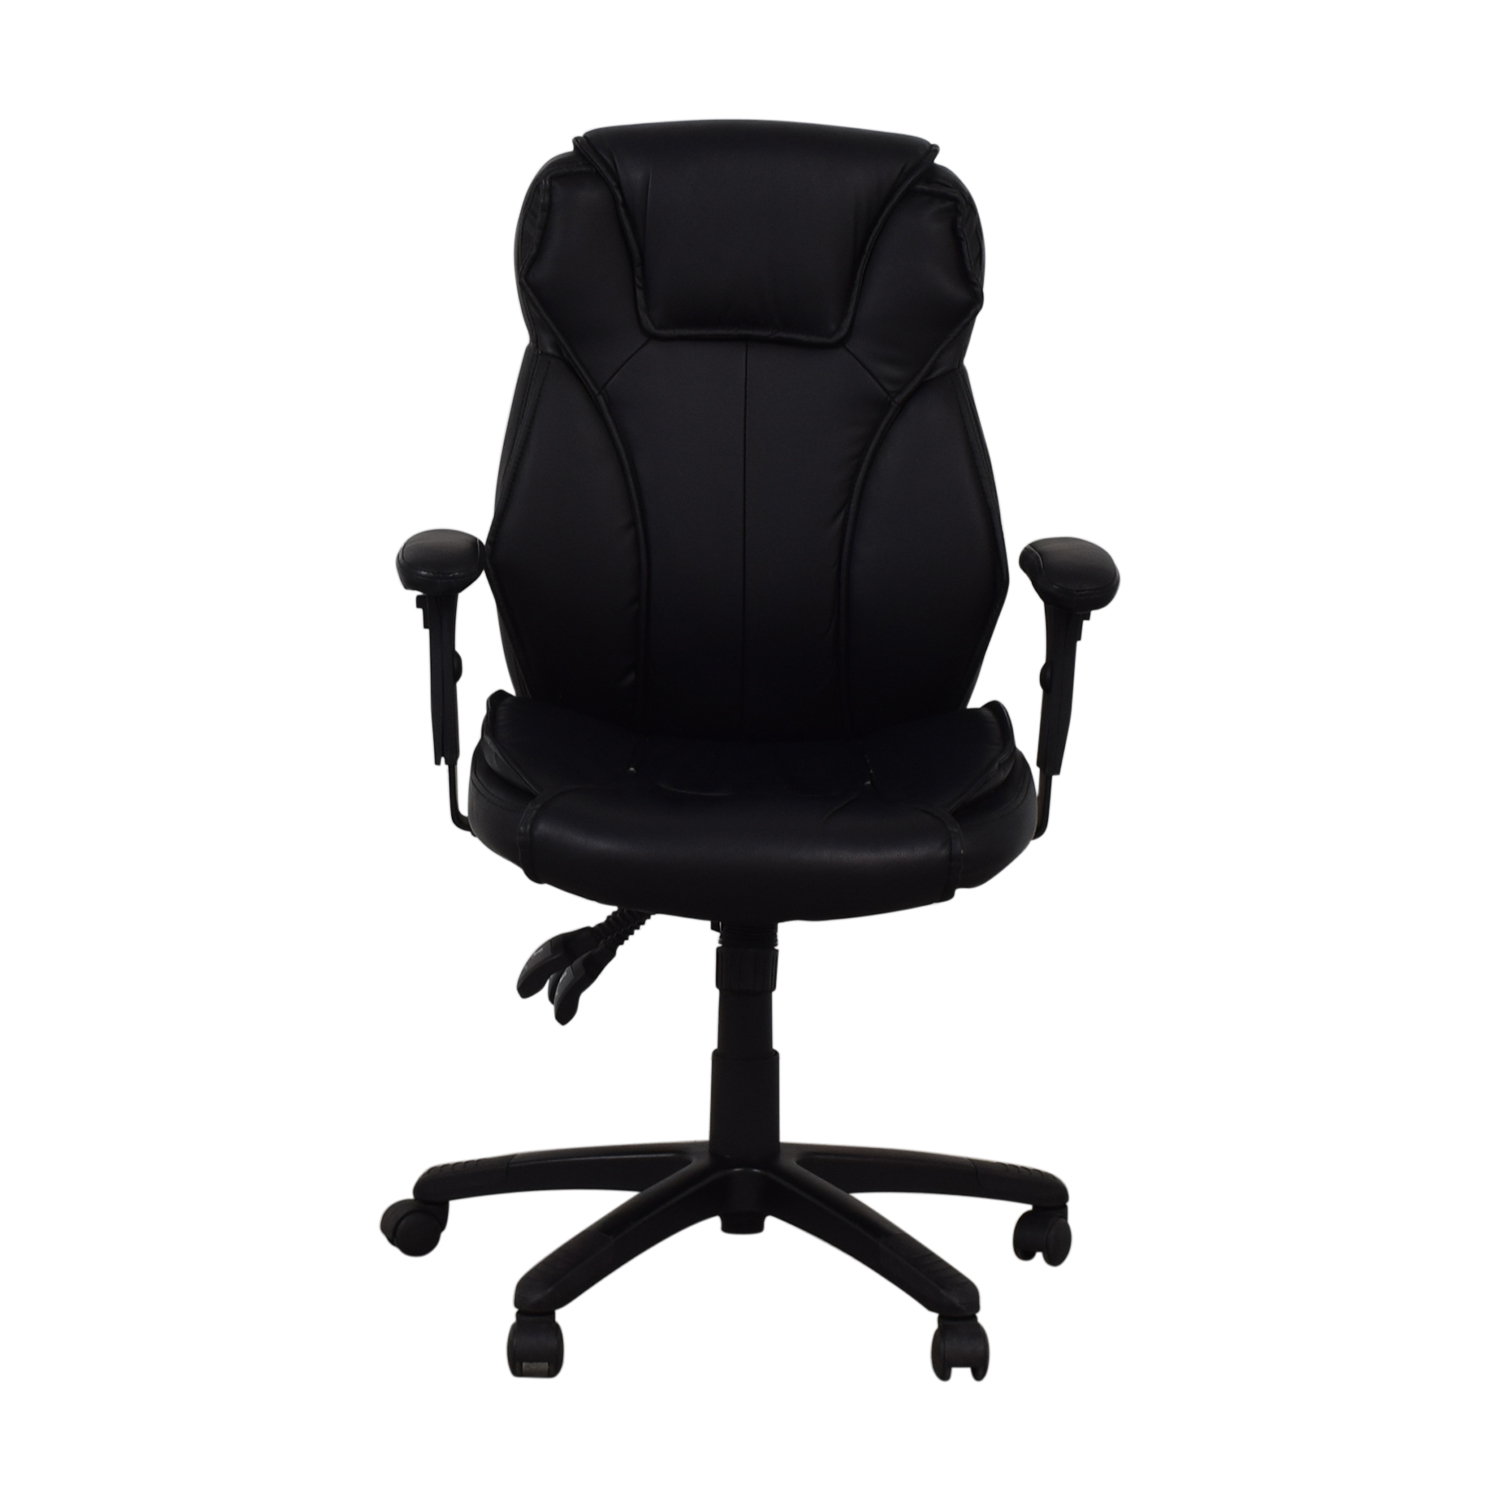 buy Black Office Arm Chair on Castors